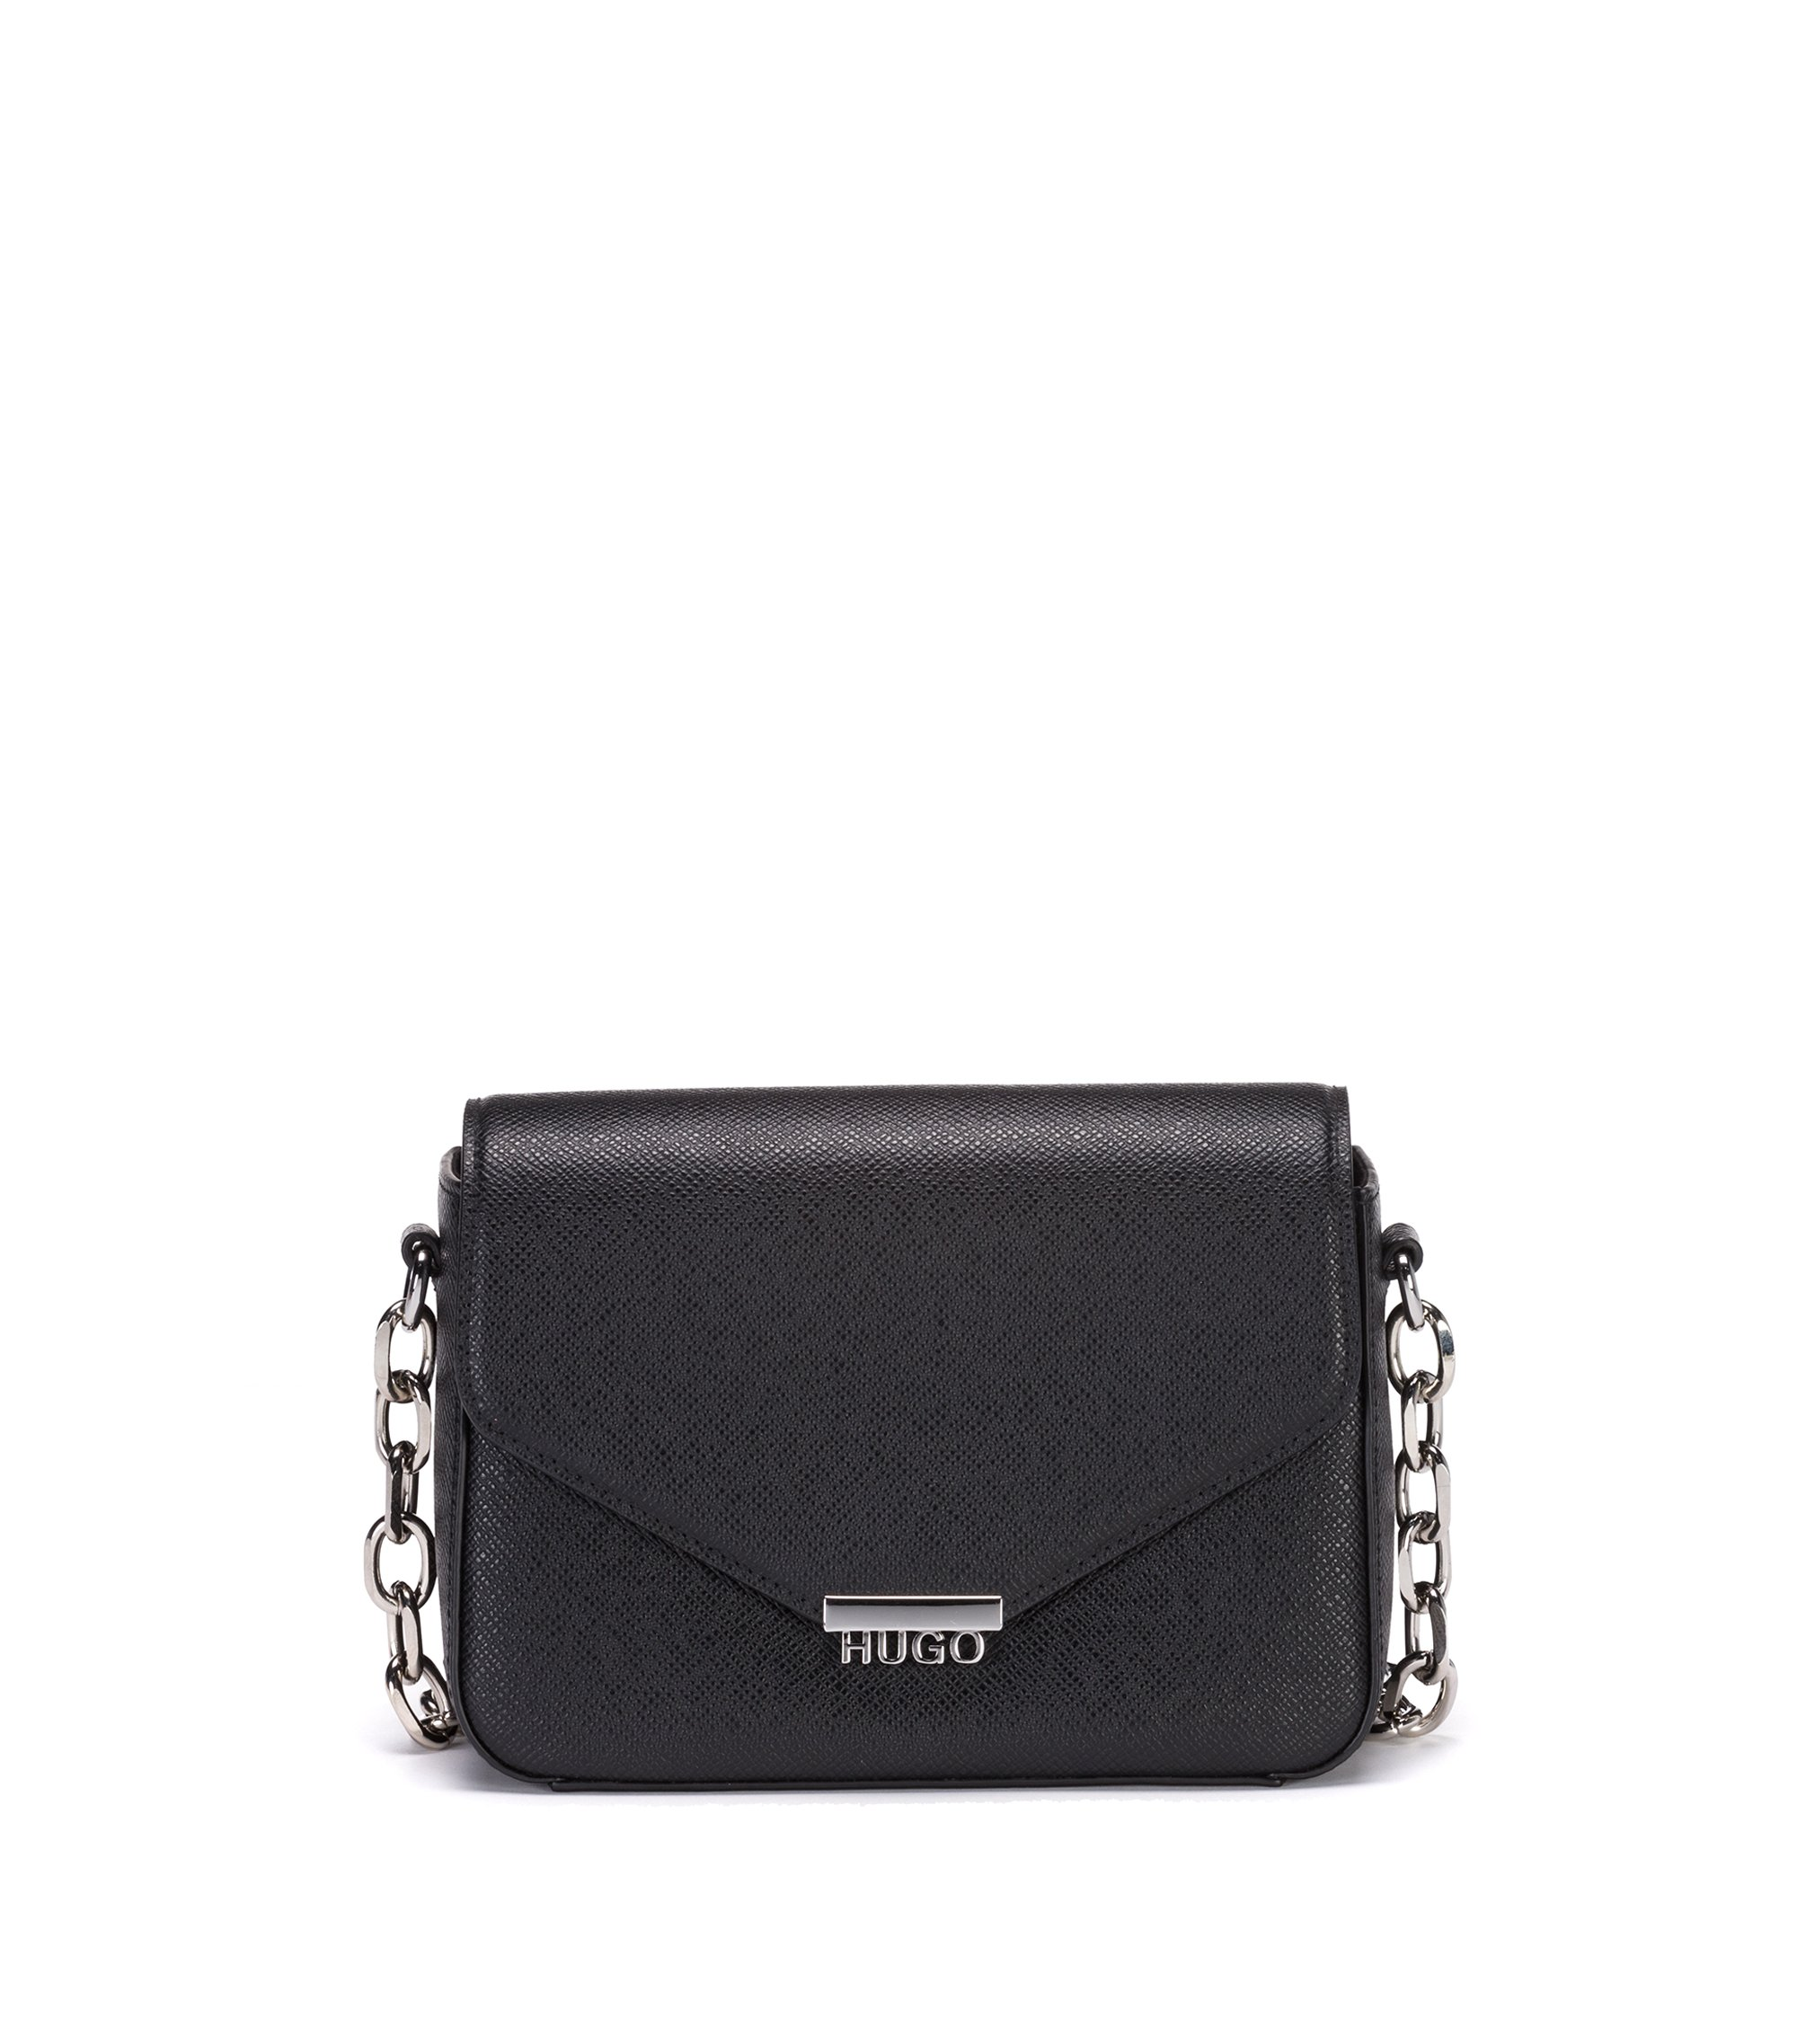 Crossbody bag in Saffiano-printed leather with chain detail, Black